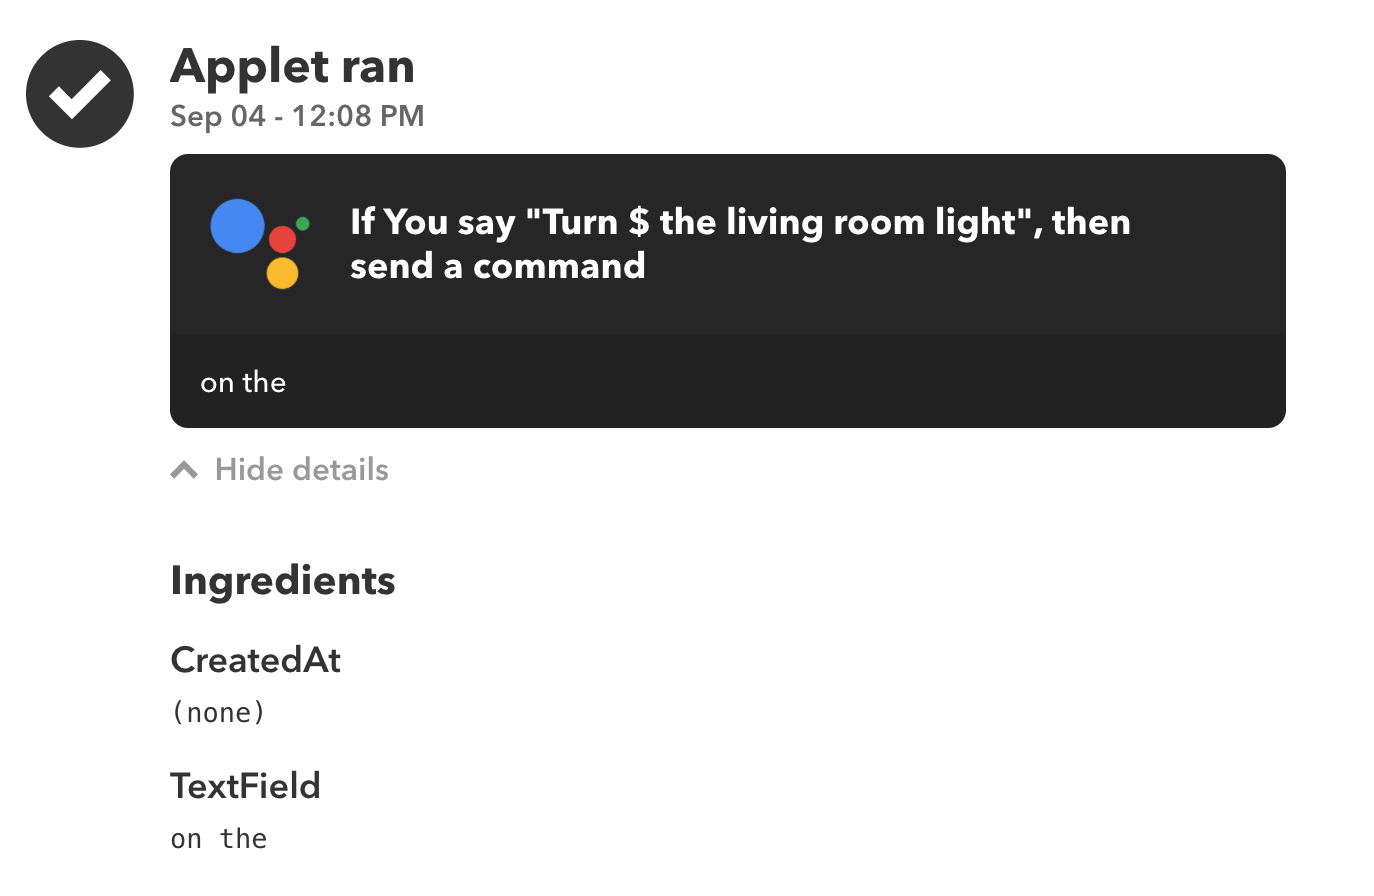 Google Assistant recognizes wrong text ingredient in IFTTT